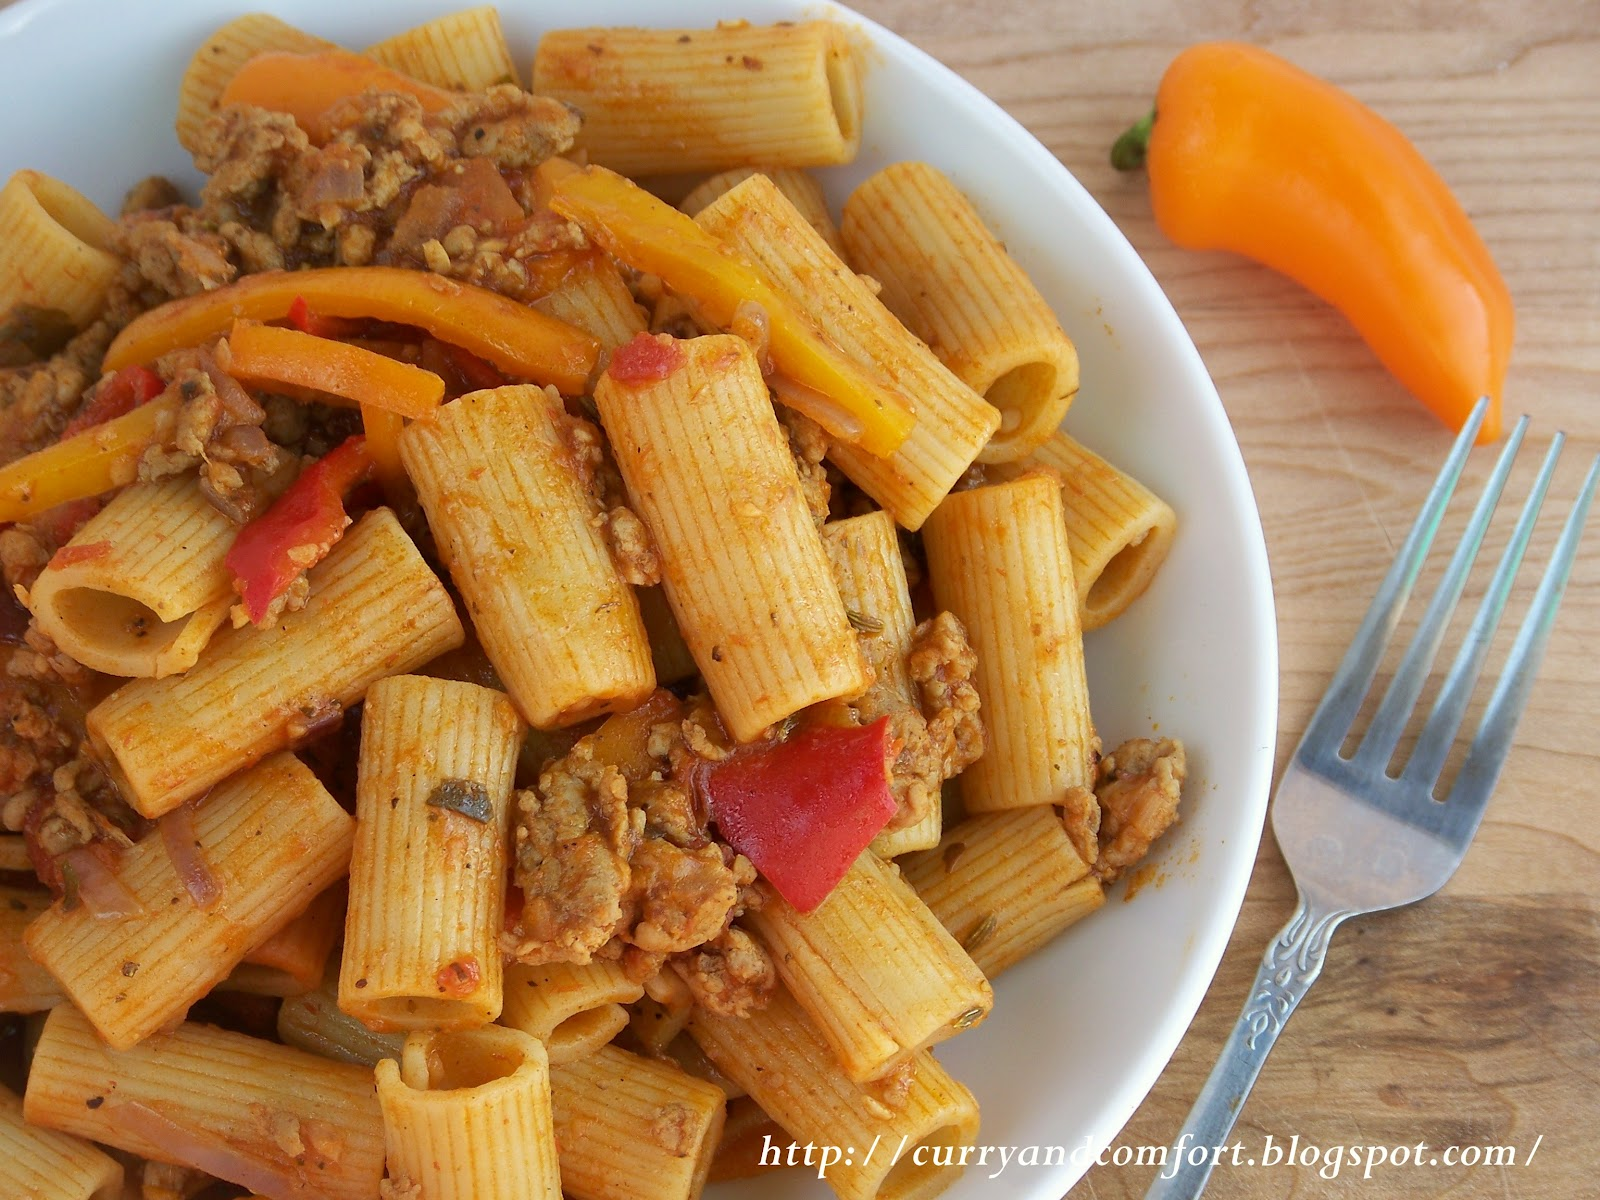 Curry and Comfort: Sausage, Pepper and Onion Pasta